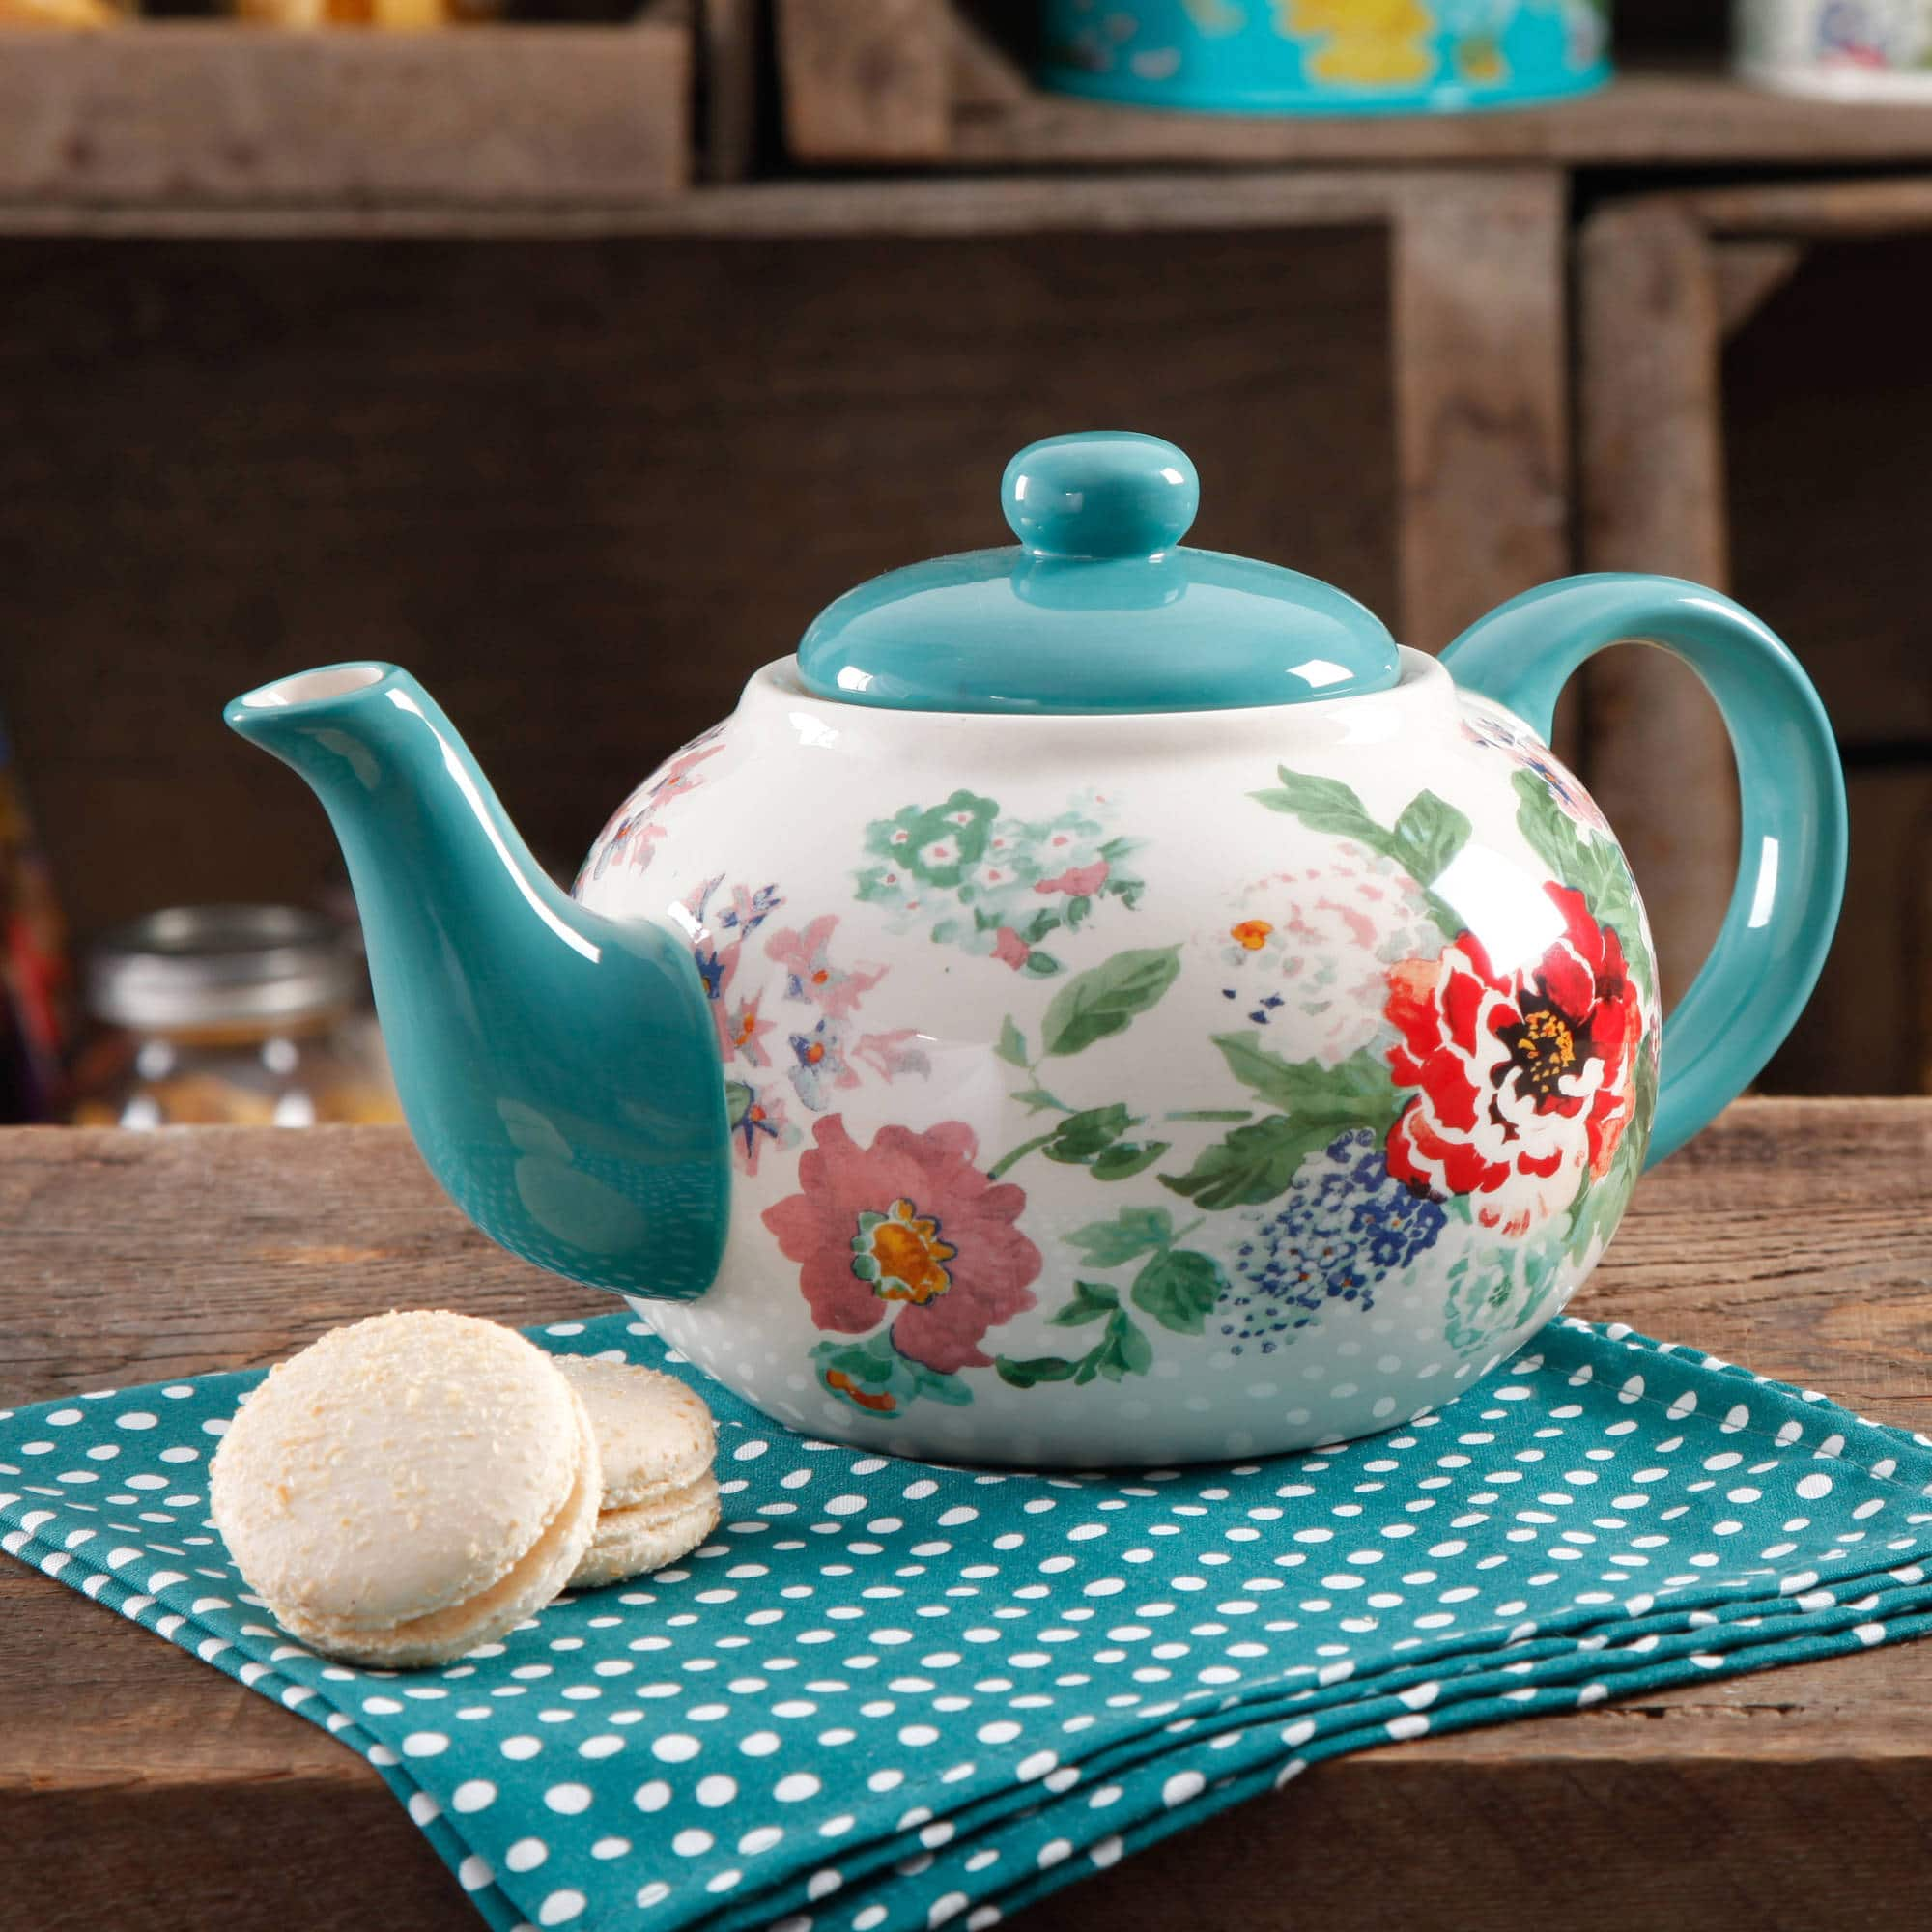 The Pioneer Woman Country Garden Teapot $9.99 $10